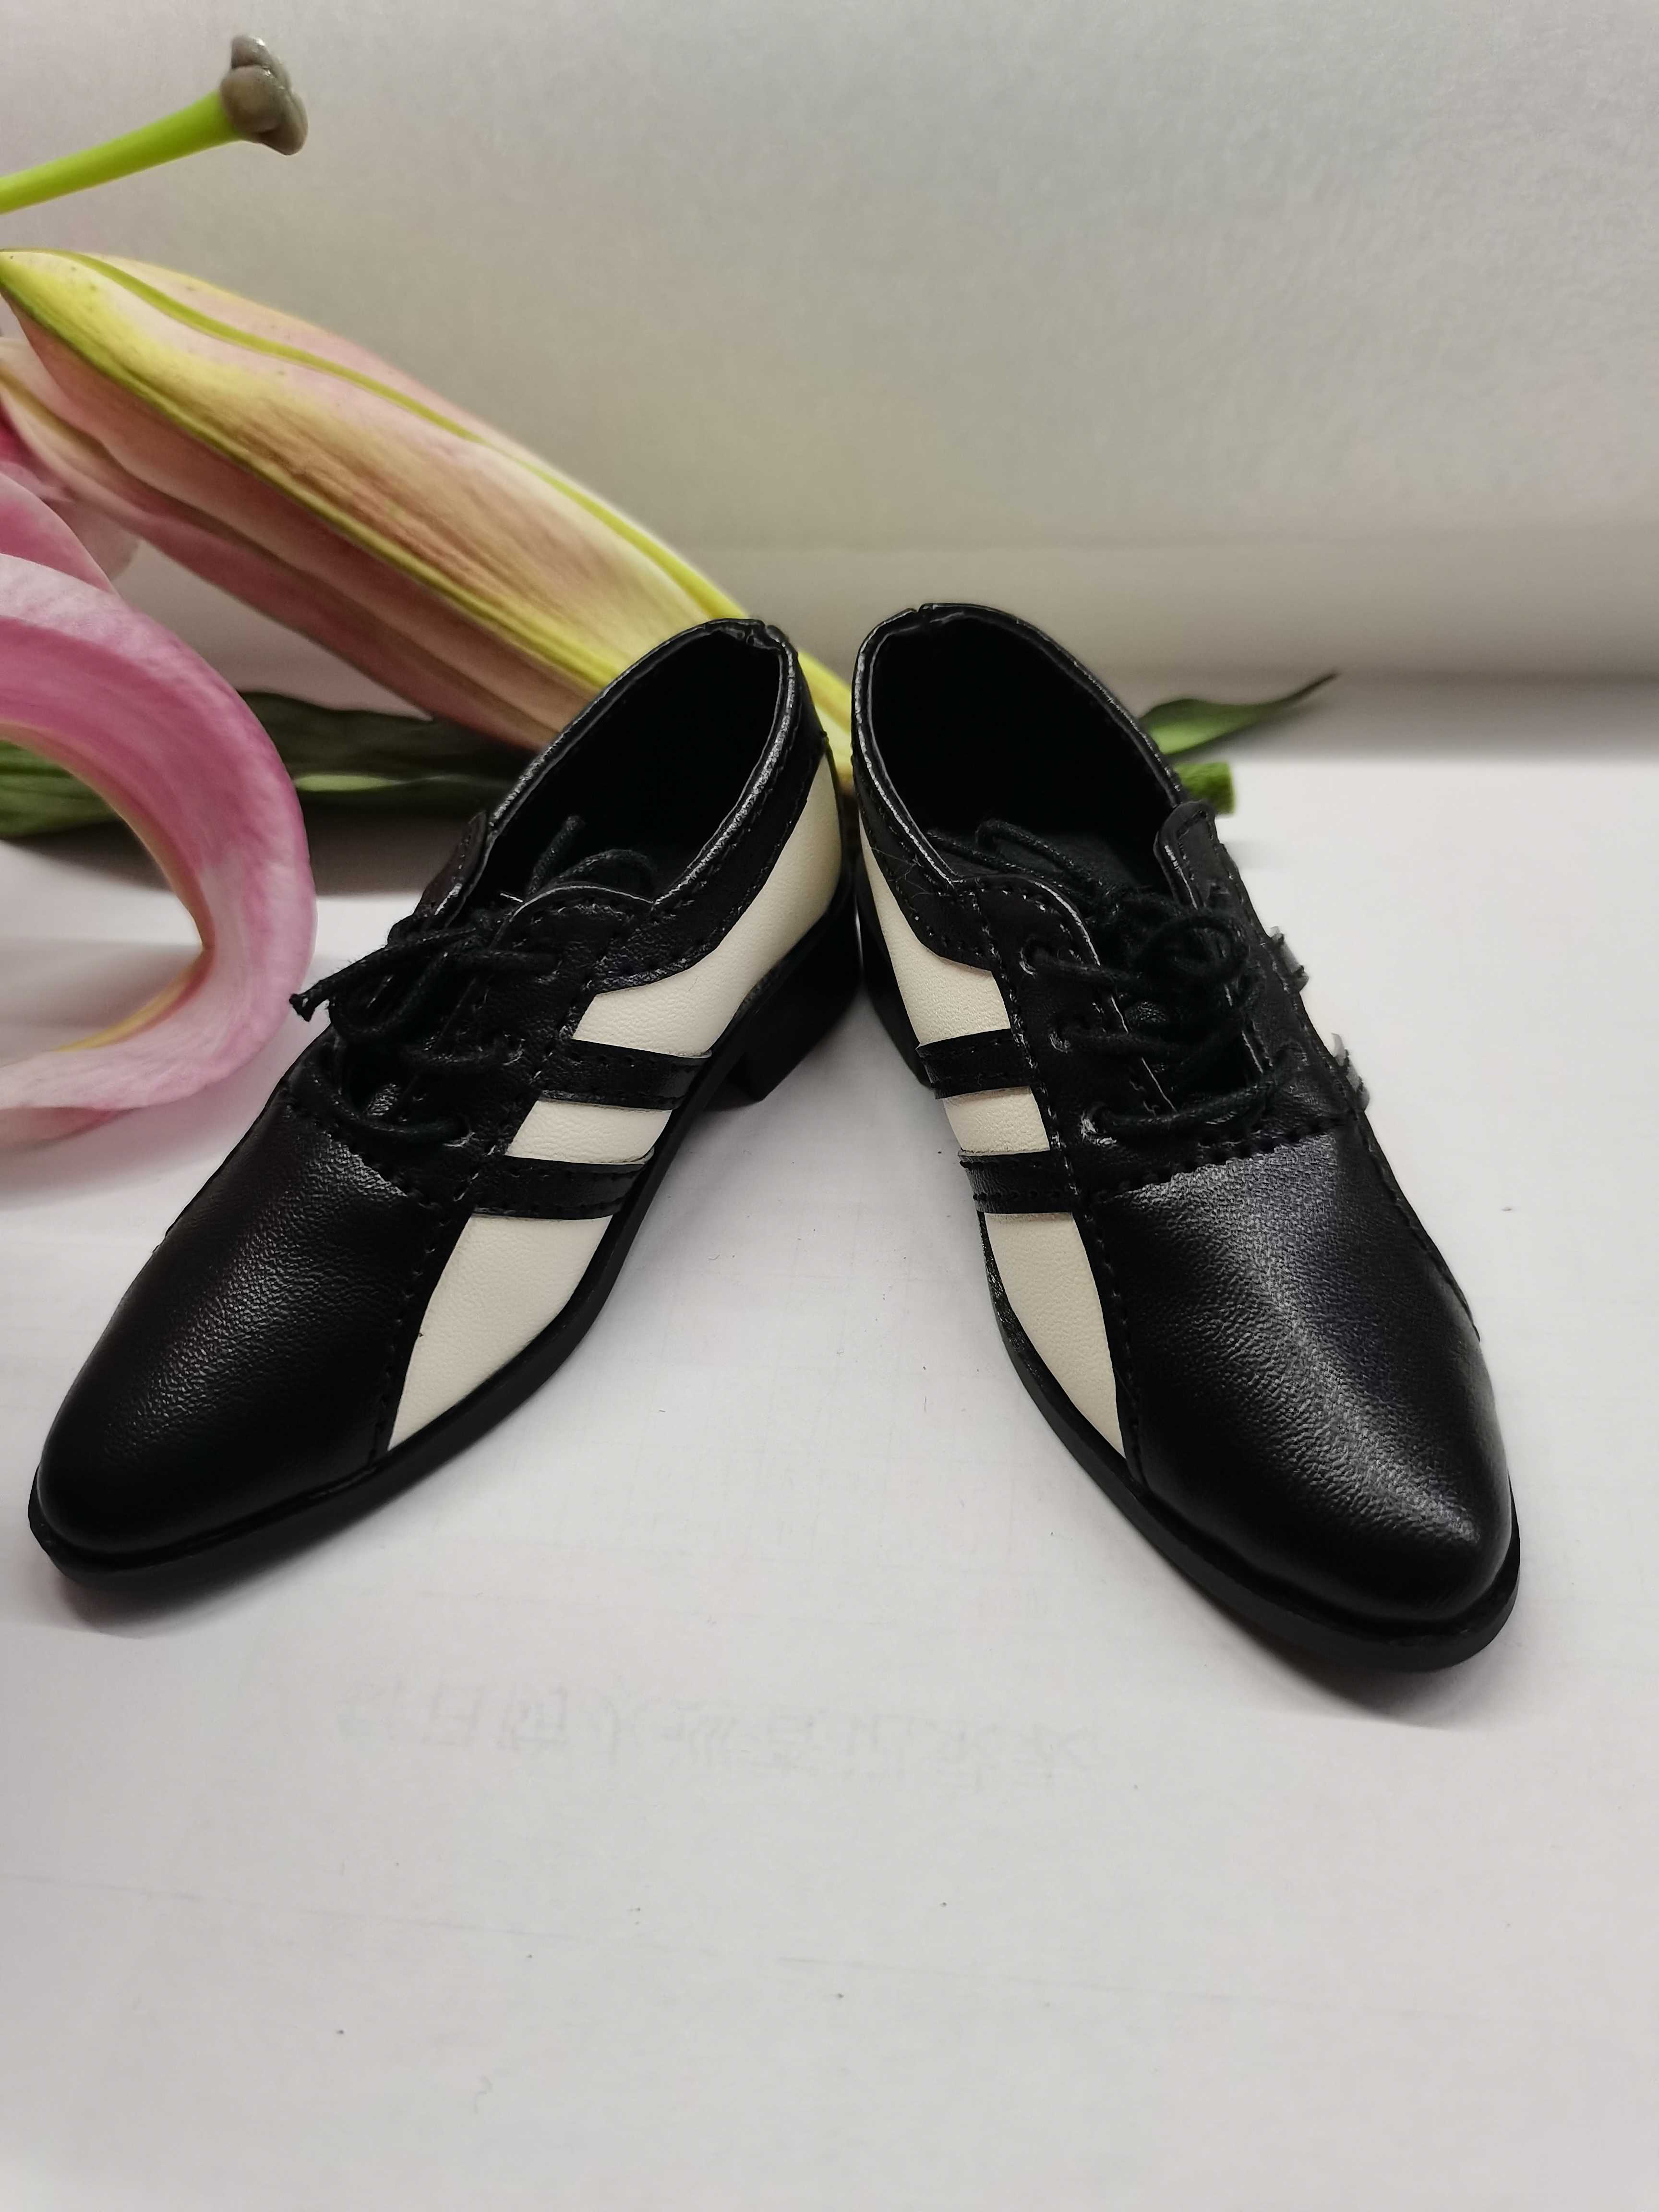 BJD mens shoes have 3 points and 4 points